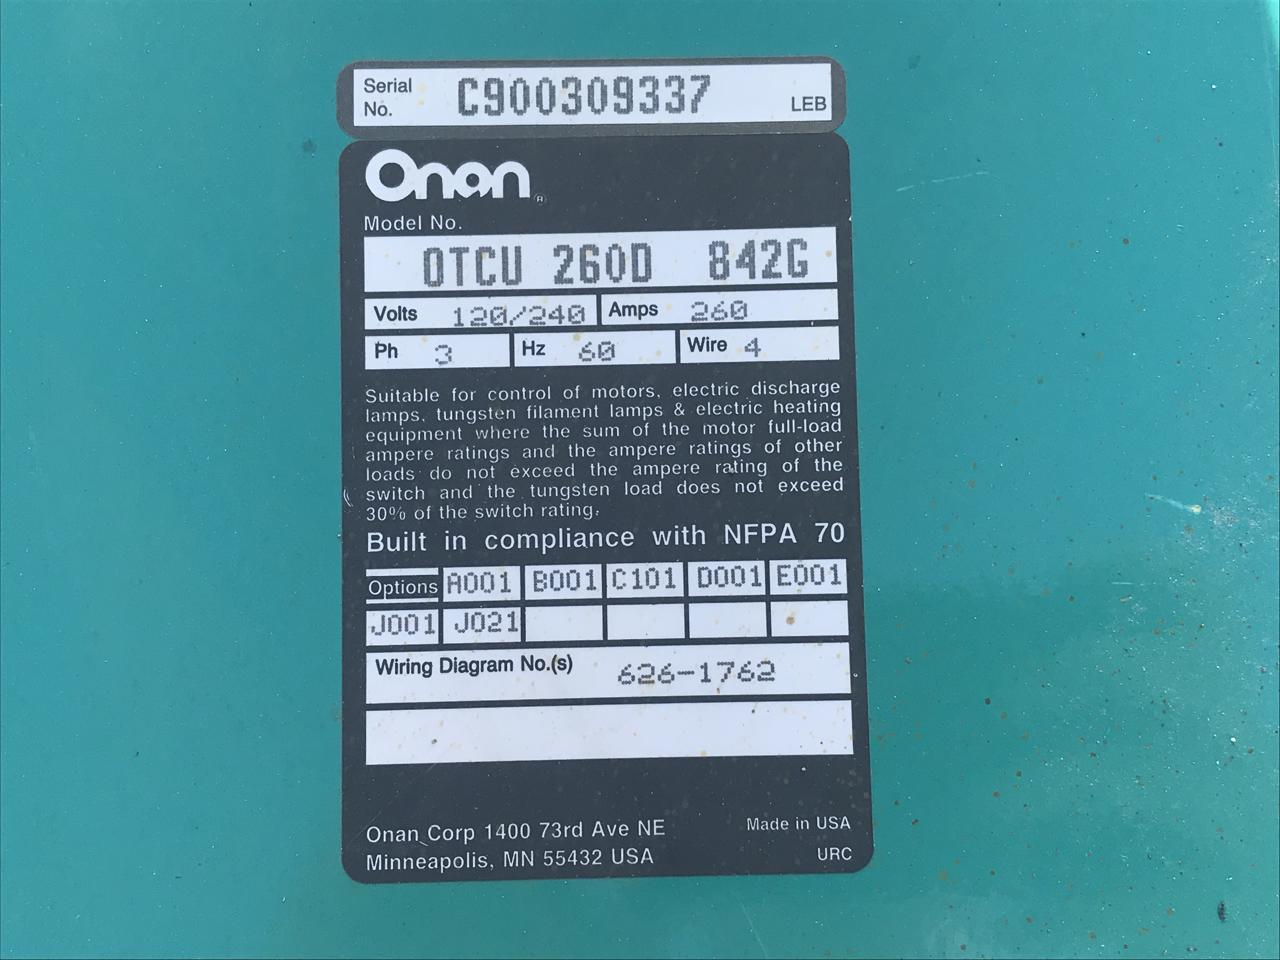 Onan Transfer Switch Wiring Diagram 626 1762 - Trusted Wiring Diagram •